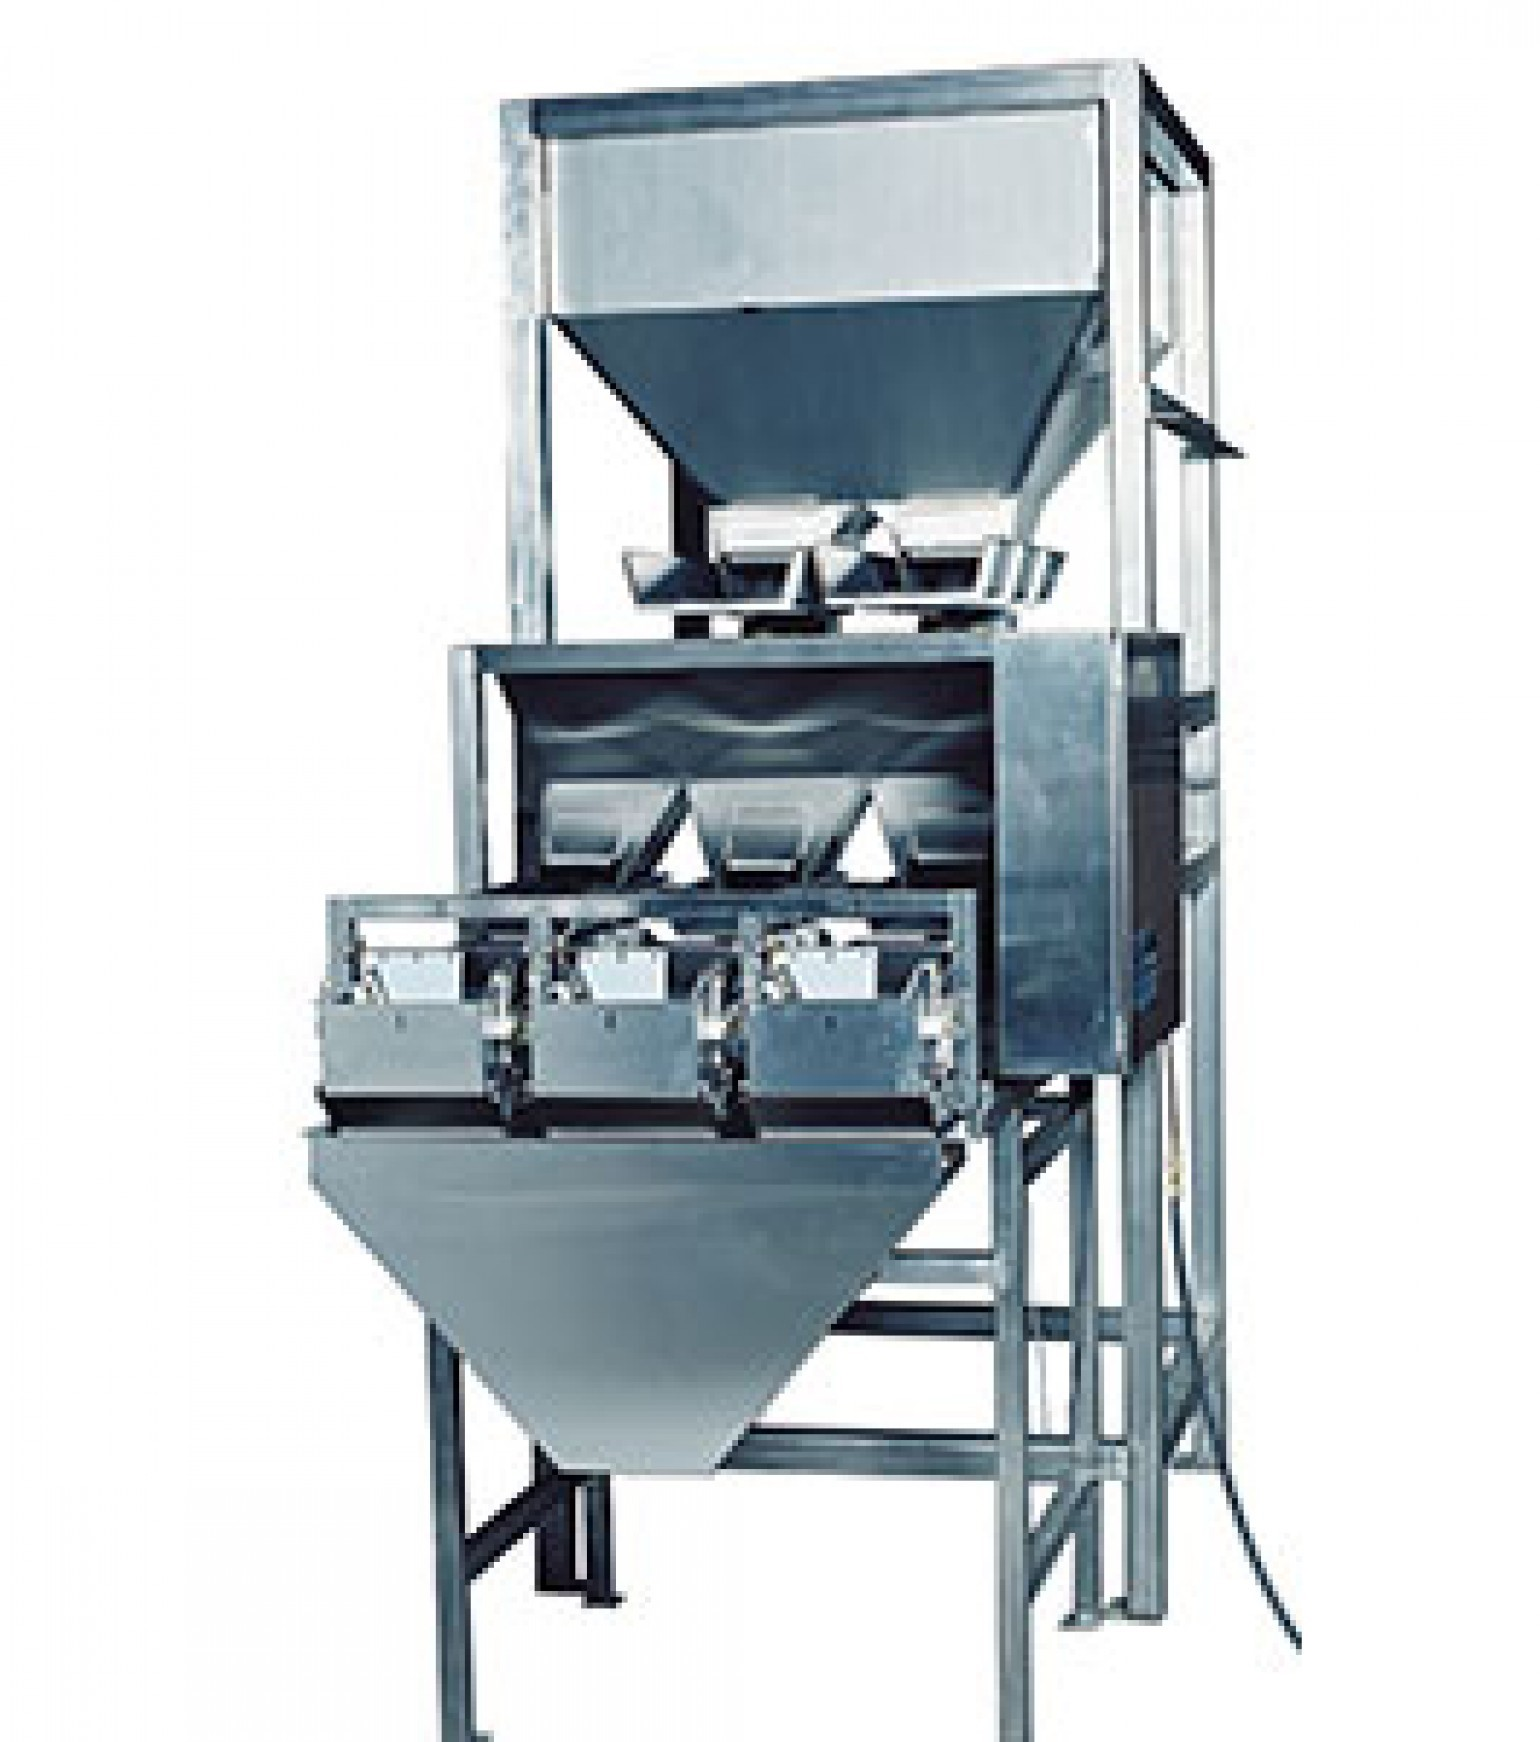 Tridyne. F-206 super X net weigh filler